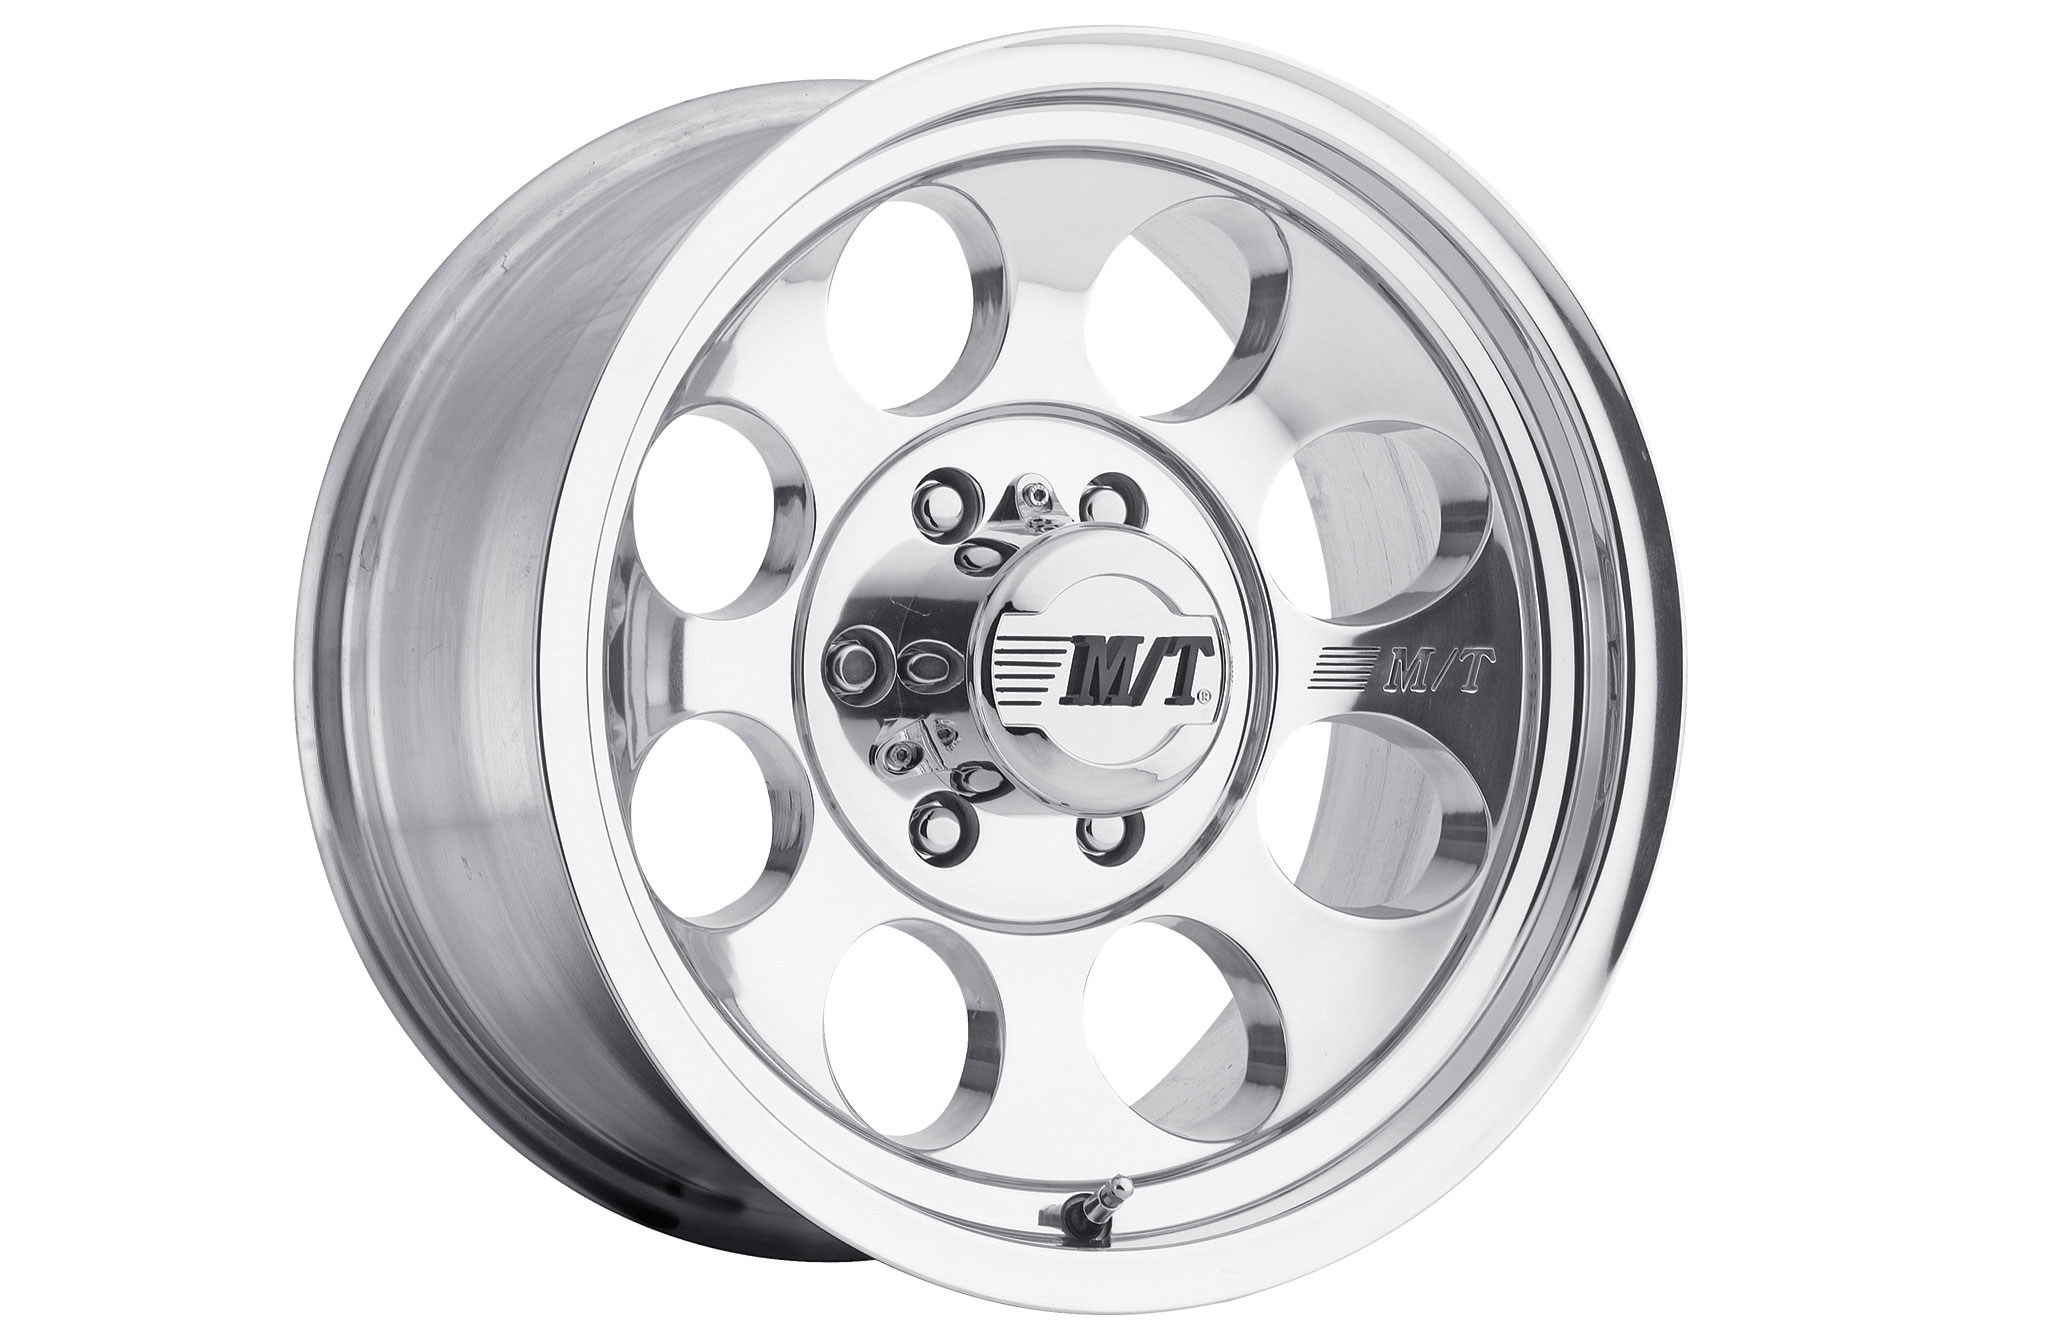 The Mickey Thompson Classic III is a cast-aluminum wheel that is available in a variety of sizes and bolt patterns. The maximum load of the Classic III is more a function of the bolt pattern than the wheel construction. The 5-lug Classic IIIs are rated at 1,900 pounds each, while 8-lug Classic IIIs are rated at 3,250 pounds each, with both using the same construction.